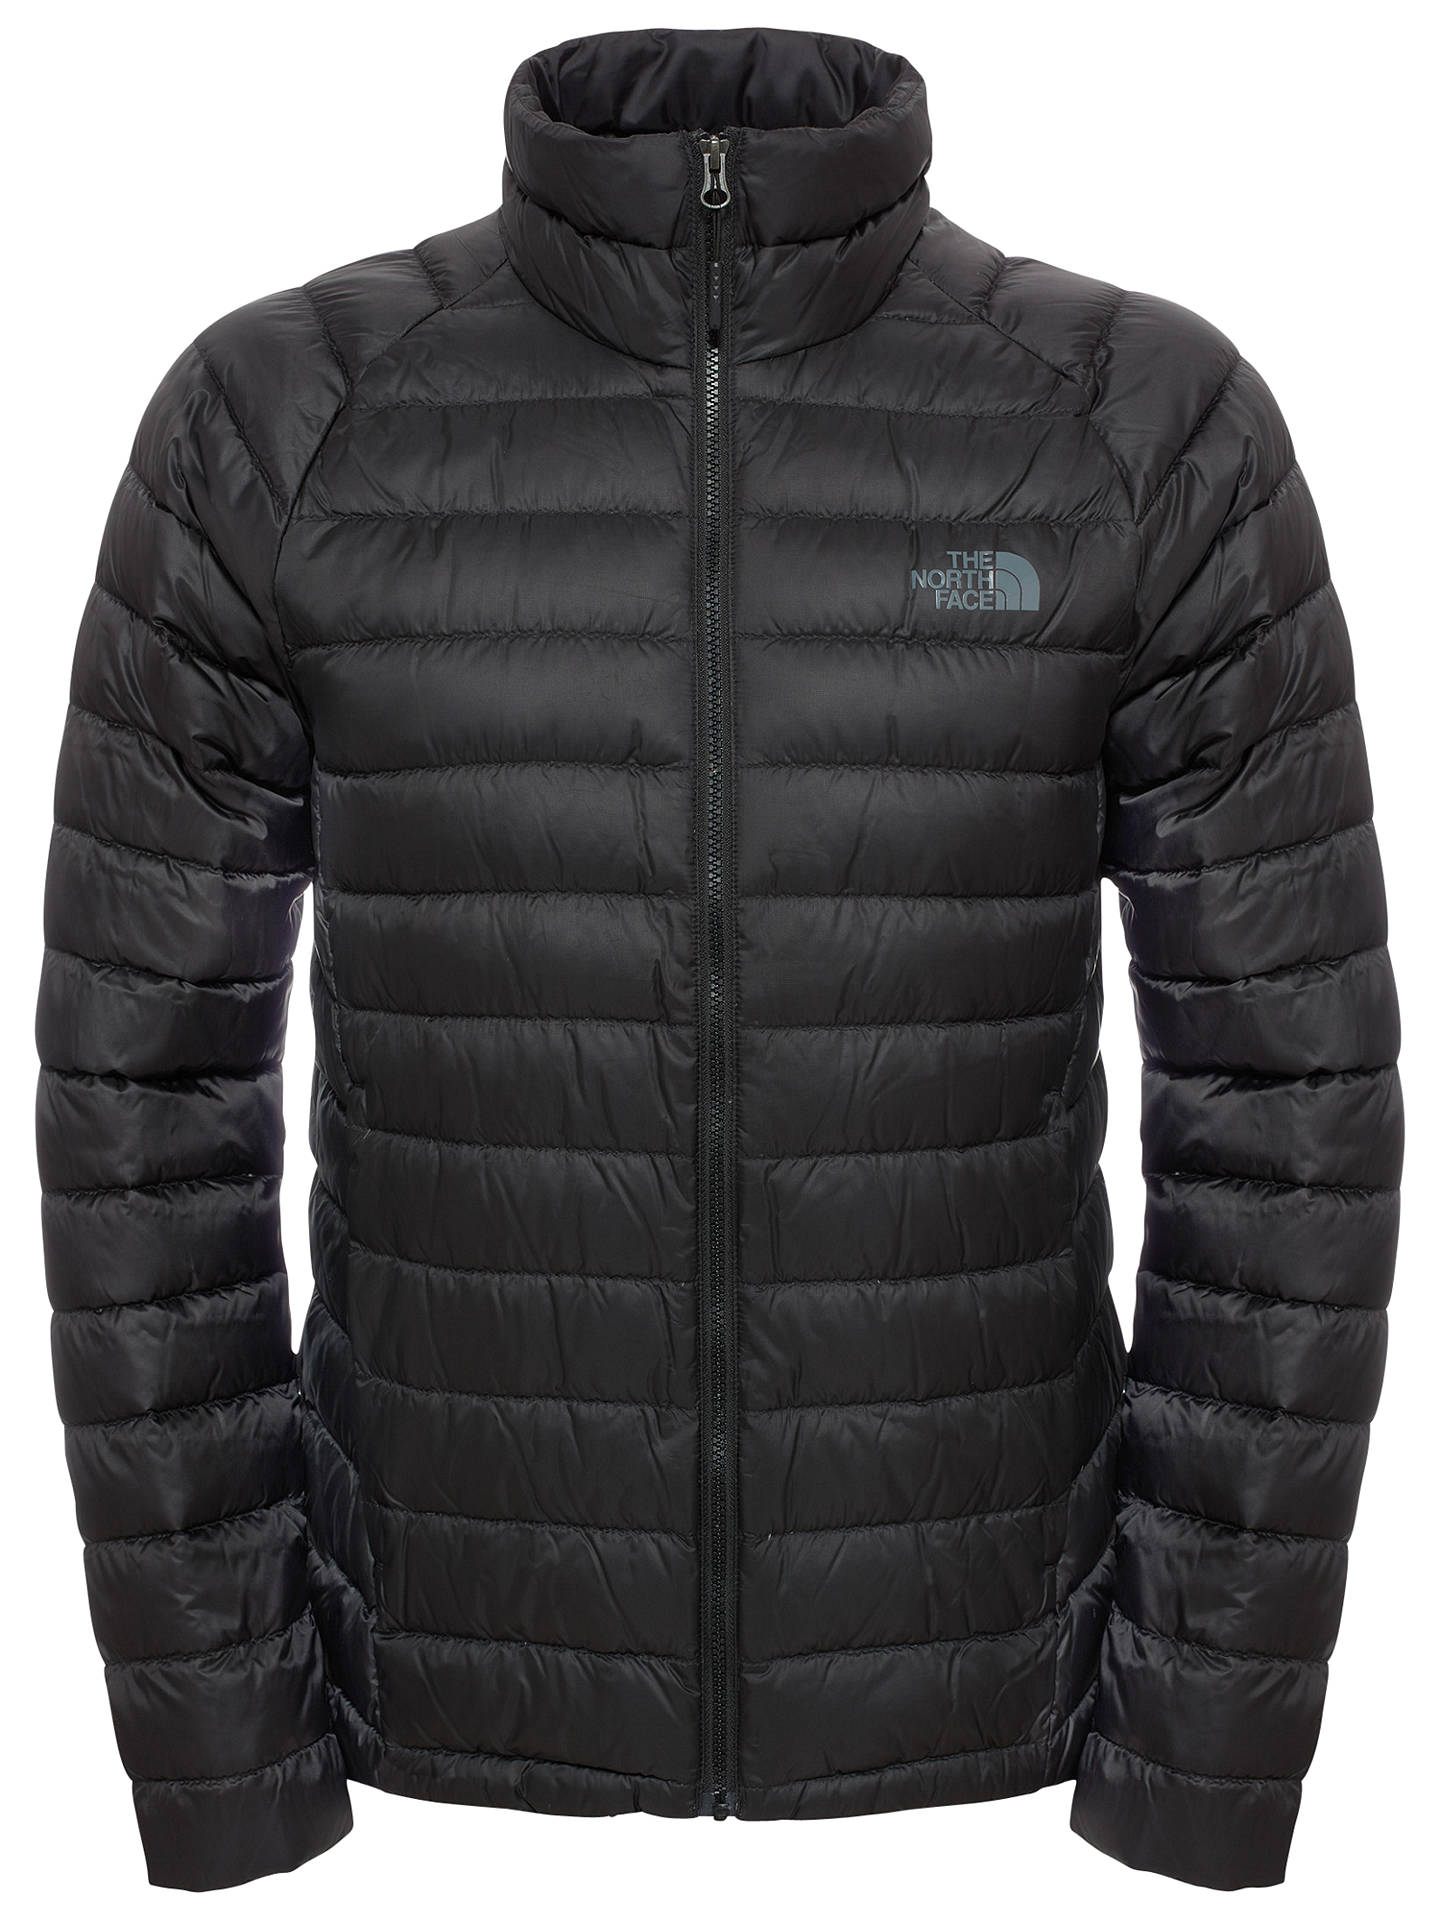 The North Face Men S Trevail Jacket Black At John Lewis Partners